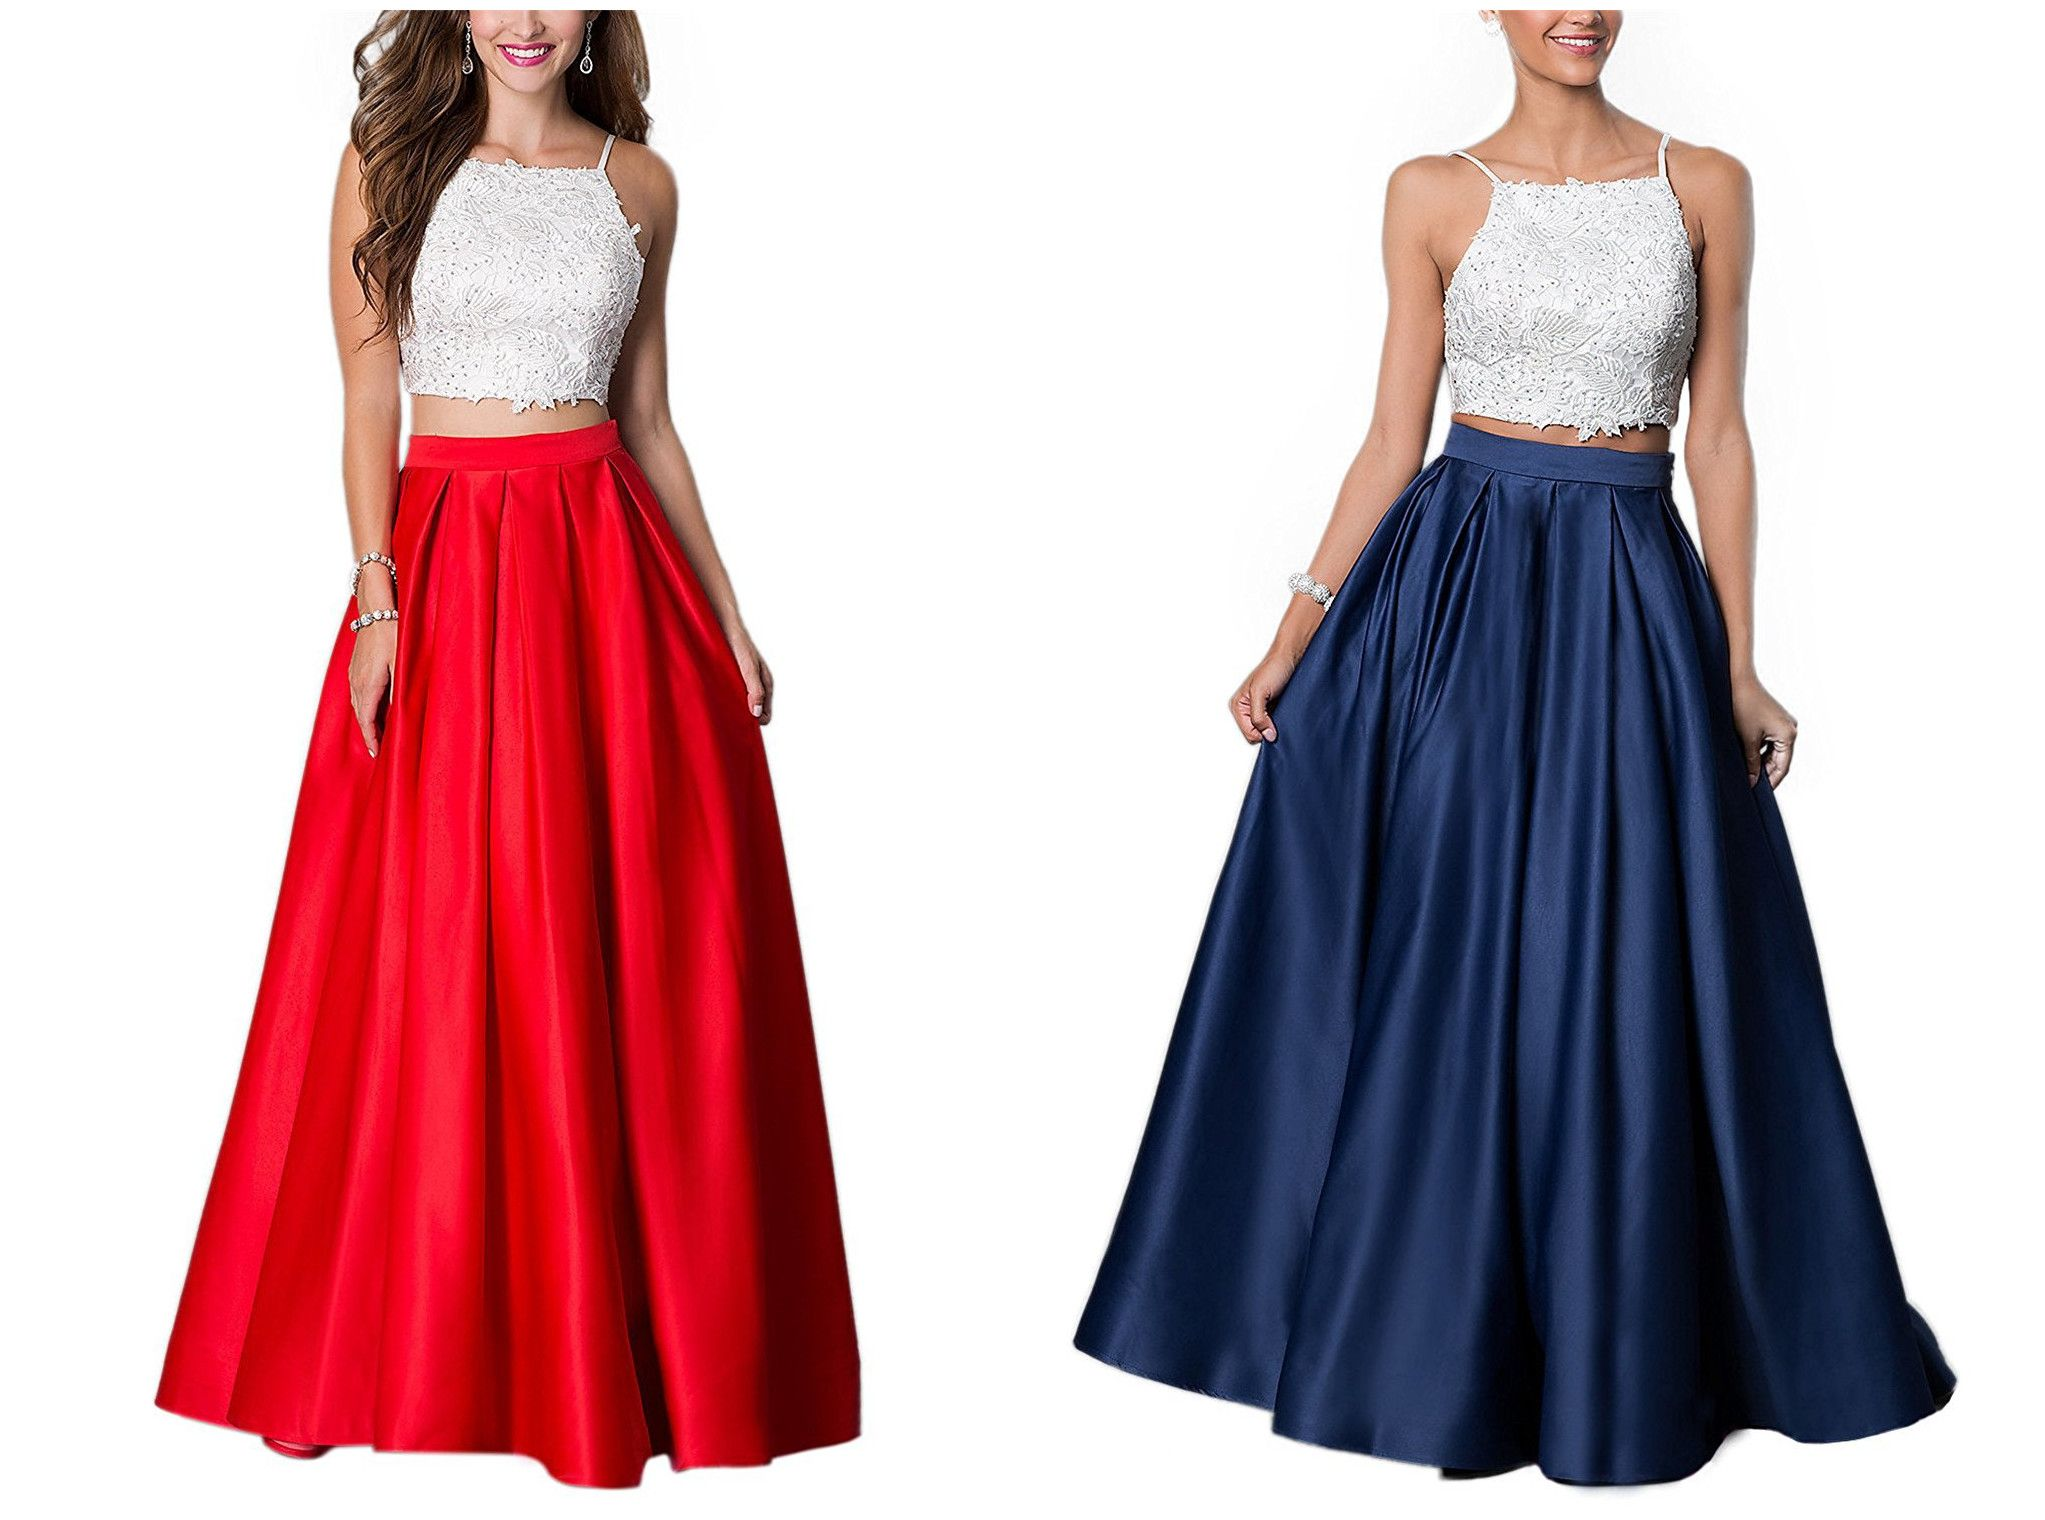 Long prom dresses for women evening gowns two piece lace rhinestone